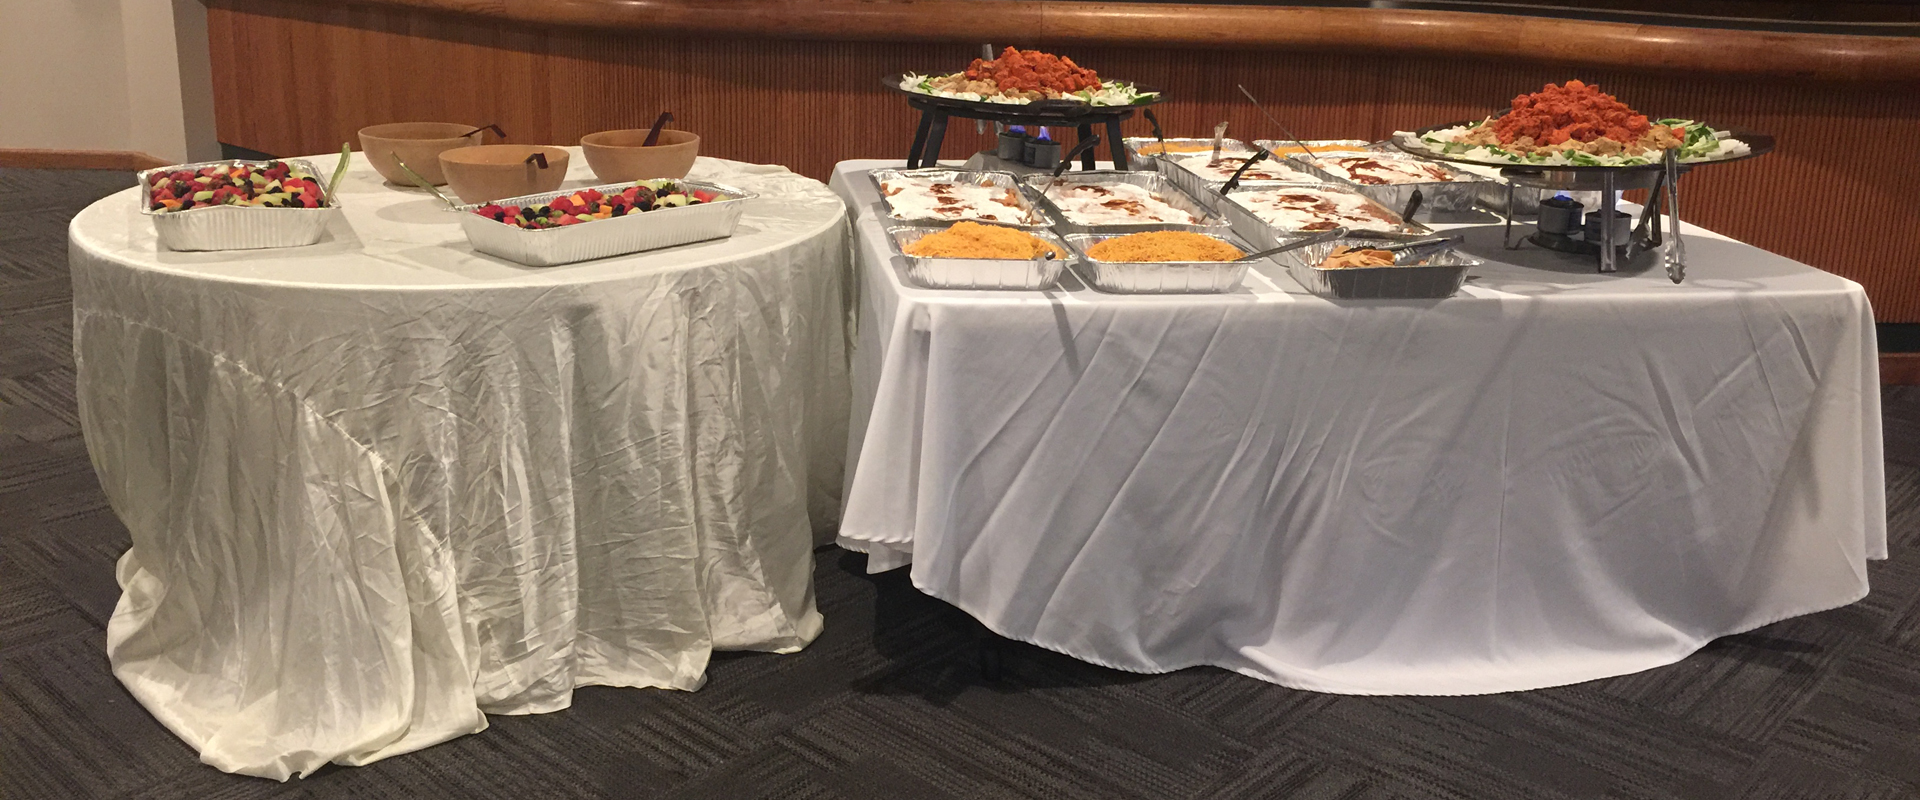 Jaipur Indian Cuisine Catering Appetizers